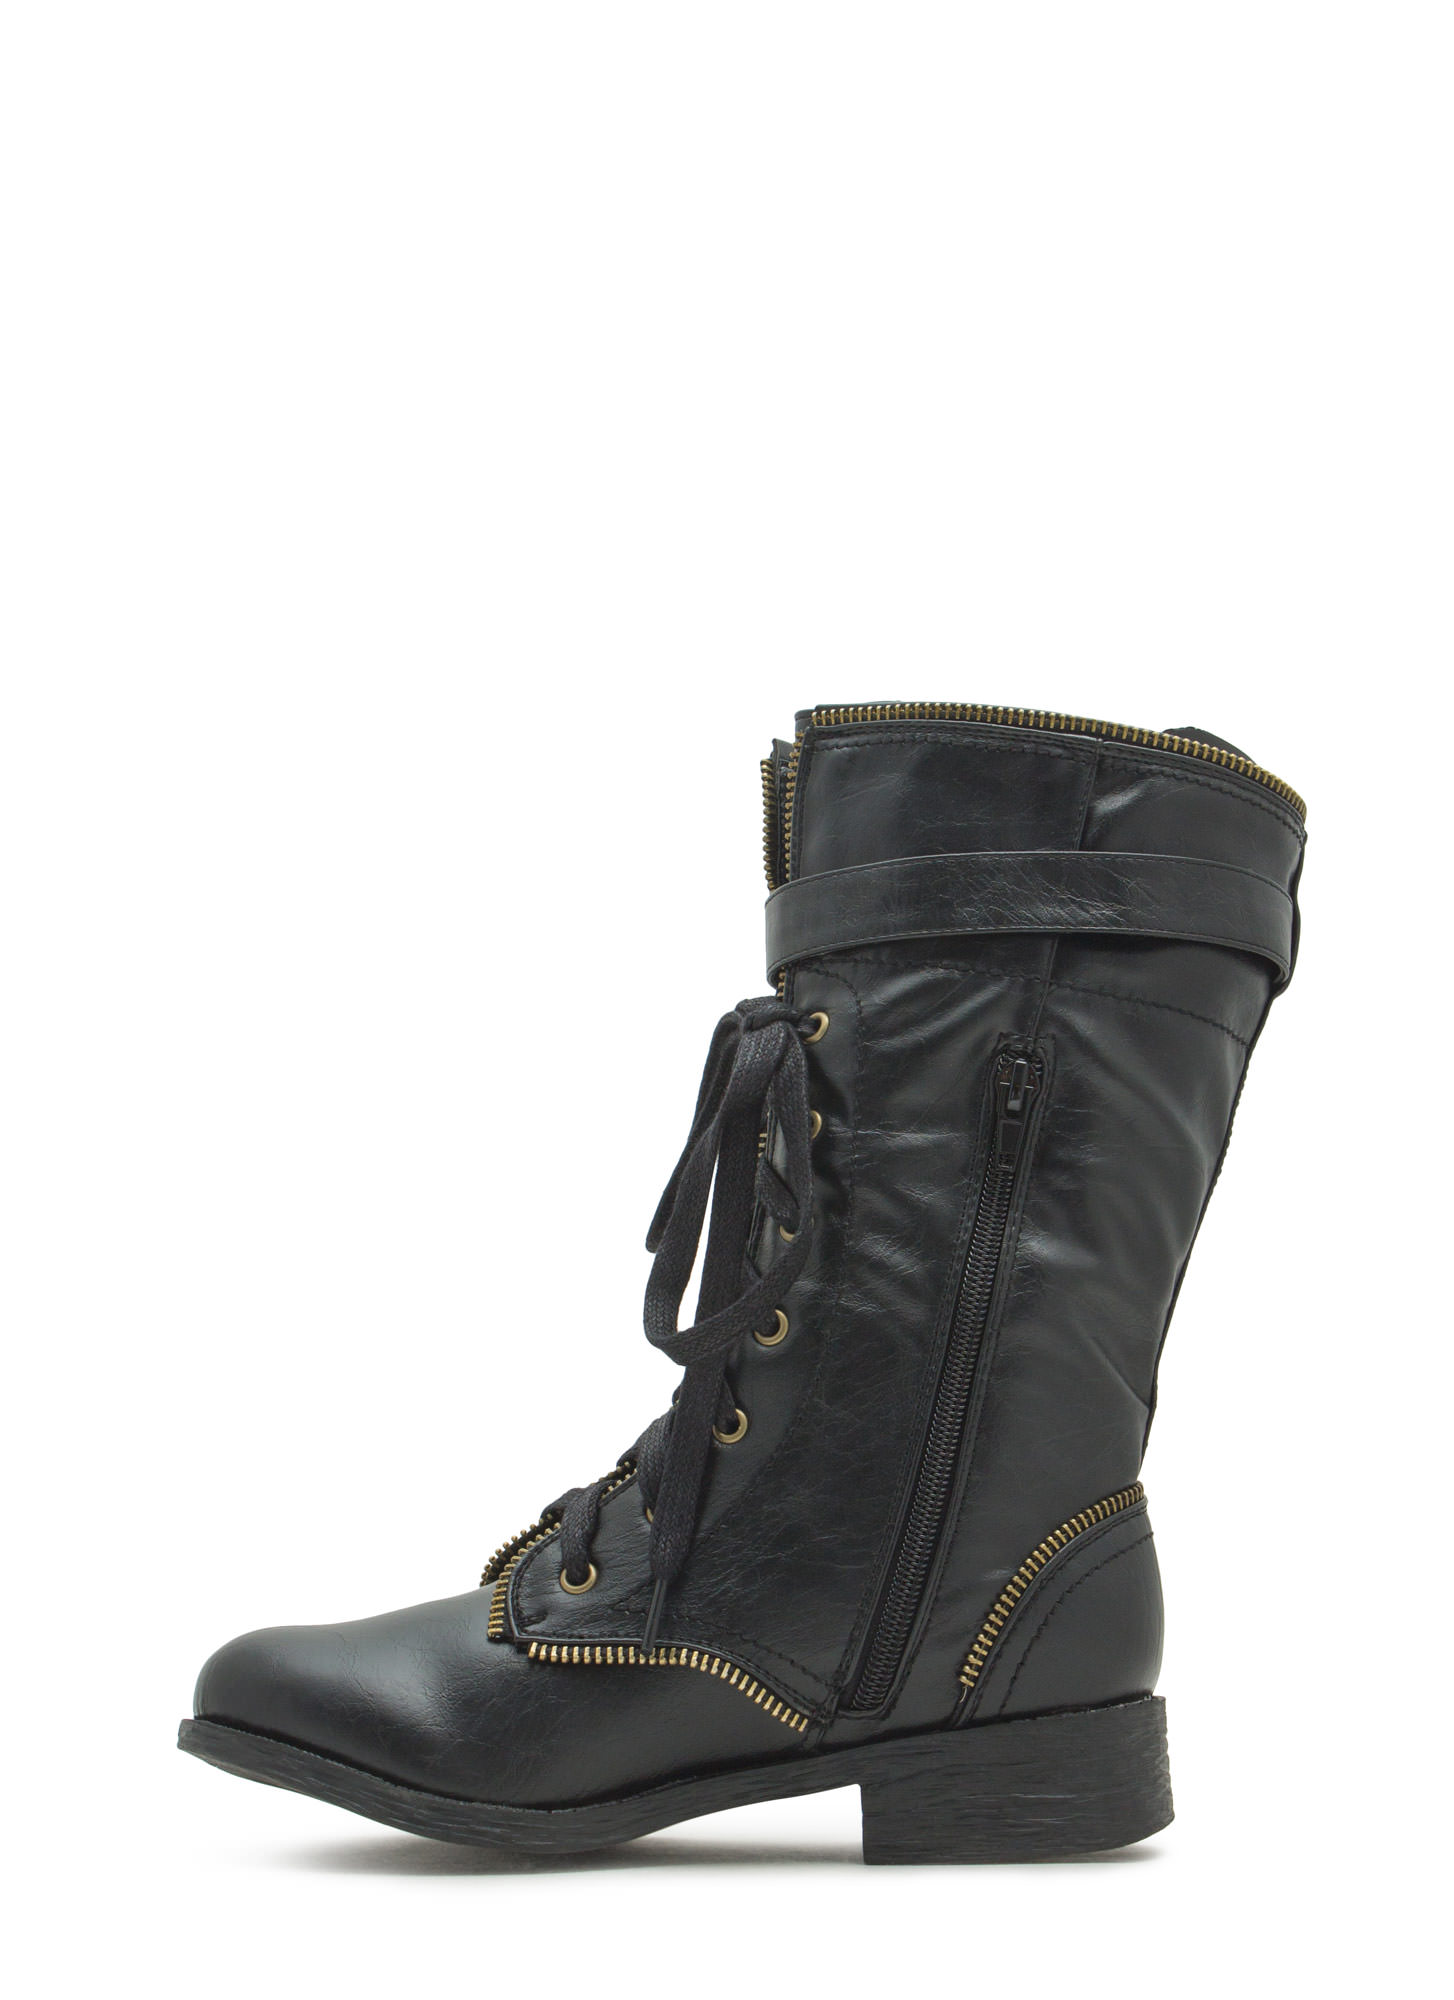 Get Zippy With It Combat Boots BLACK